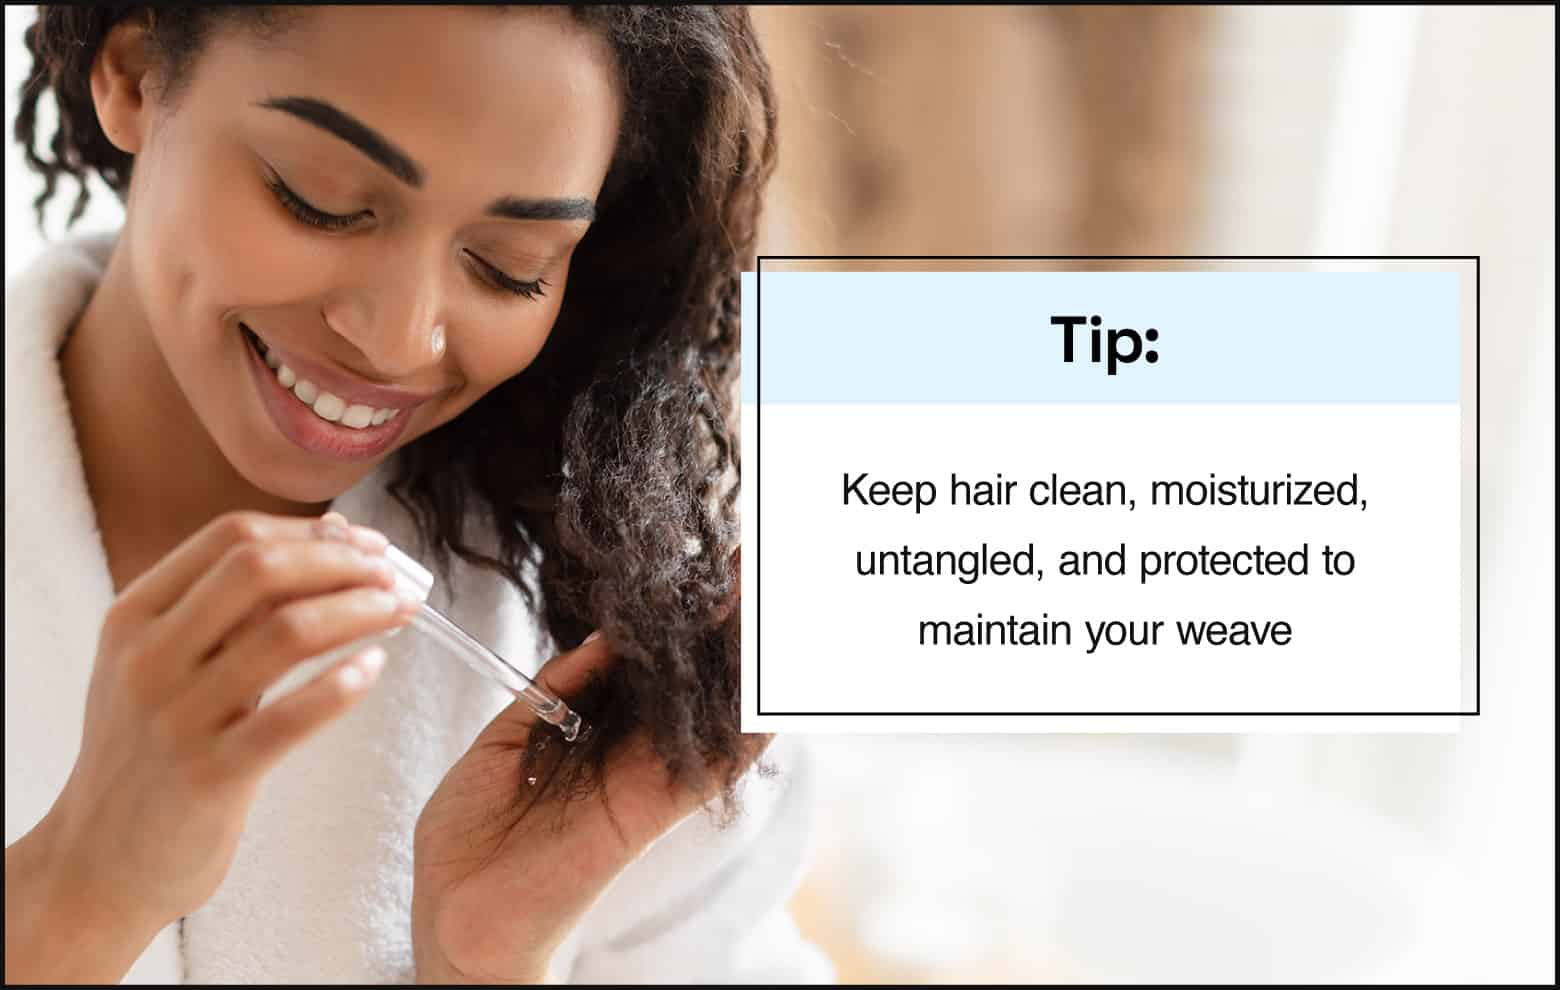 tip keep hair clean, moisturized, untangled, and protected to maintain your weave